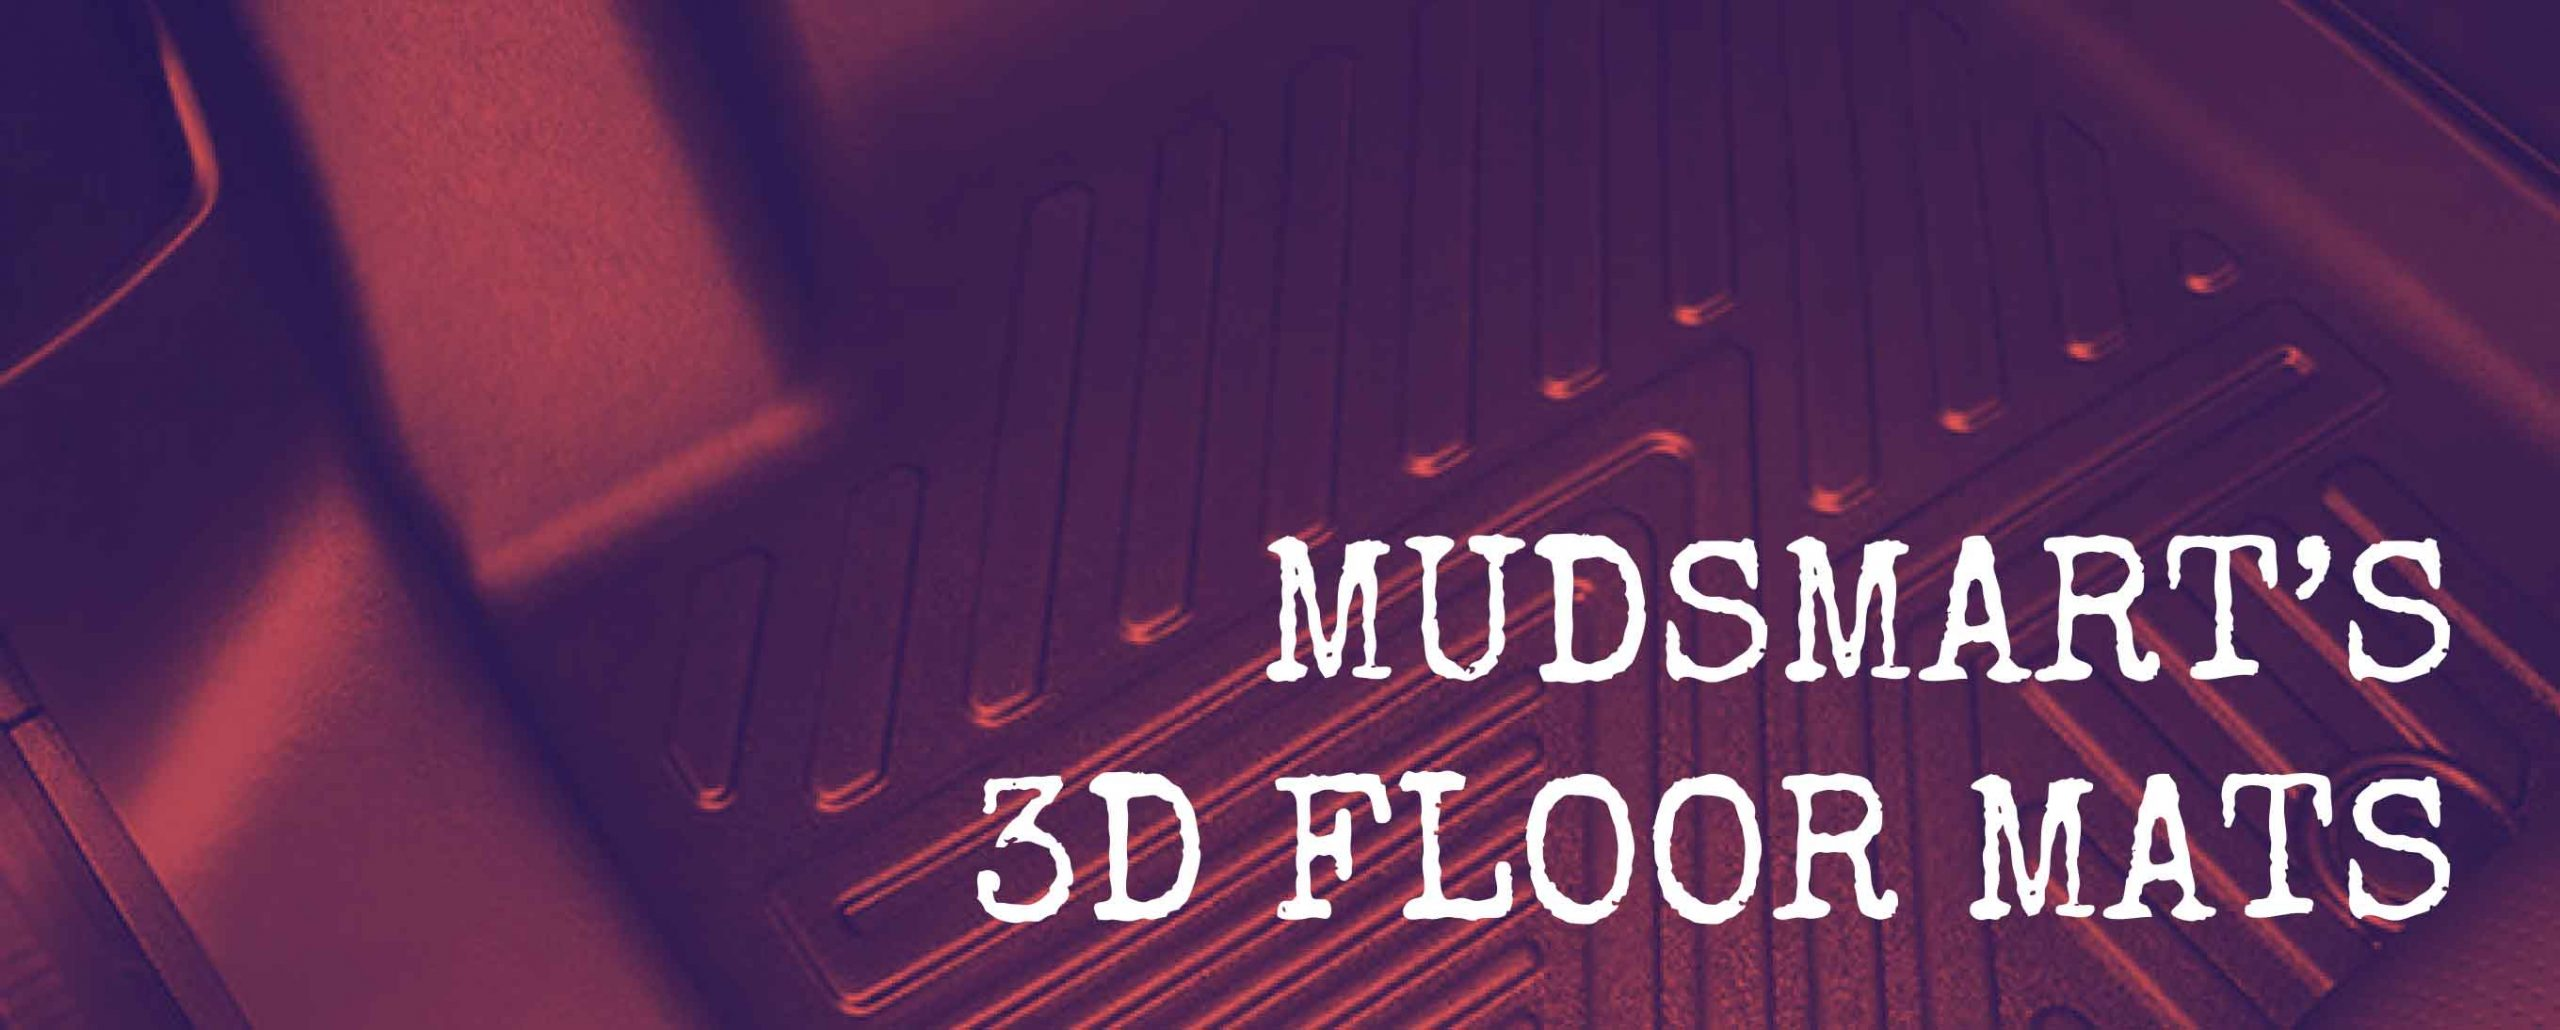 What You Should Know About MudSmart's 3D Floor Mats - MudSmart